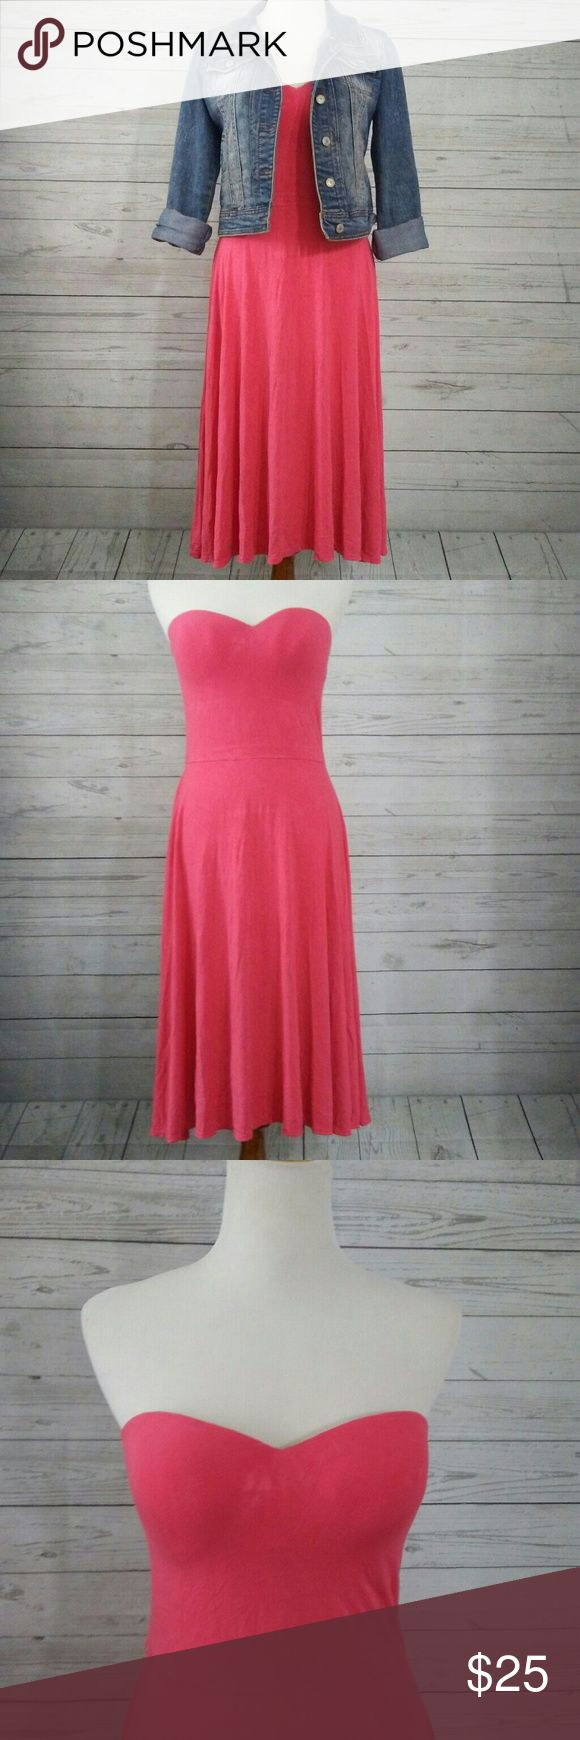 VICTORIA SECRET dress Beautiful tube top dress with built in bra size Coral  36C Gently used in good condition. Victoria's Secret Dresses